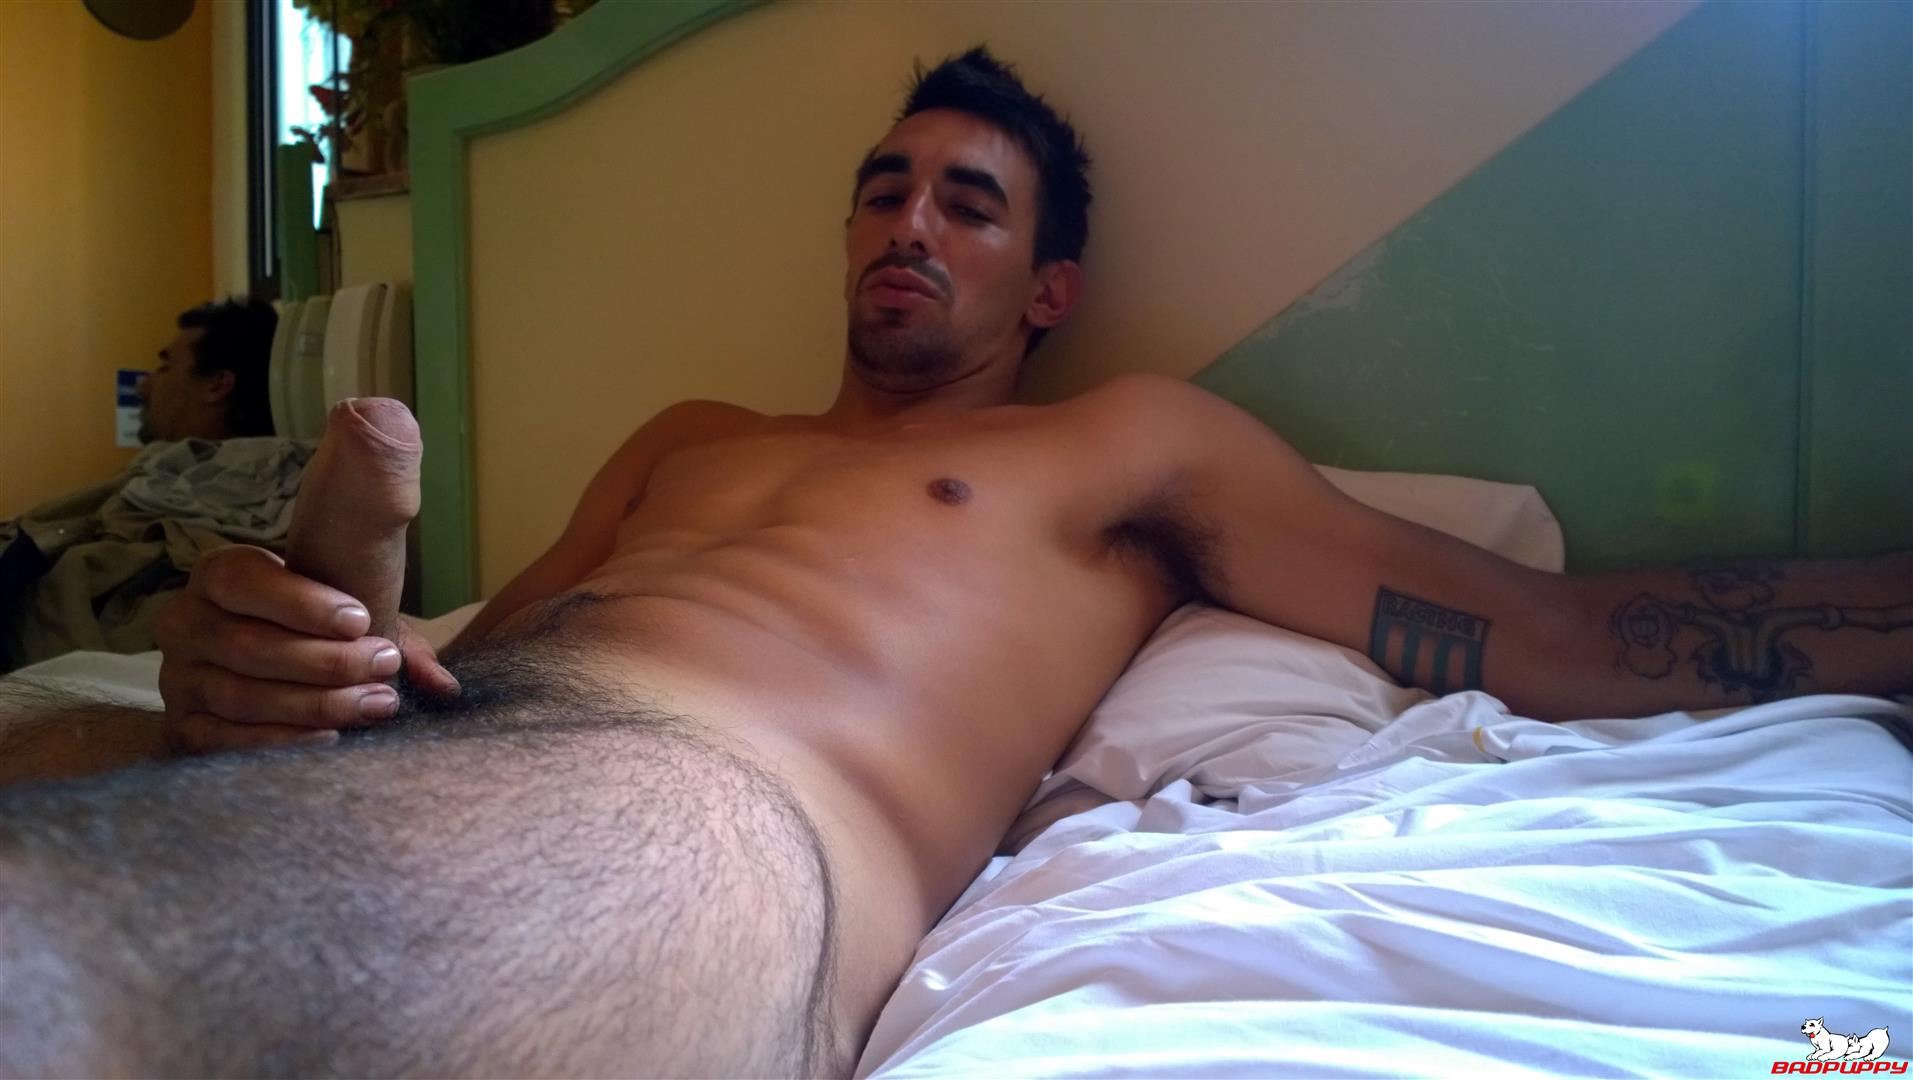 Badpuppy Fabian Flores Argentinian with a Big Uncut Cock 05 Argentinian Hunk With A Big Uncut Cock Auditions For Gay Porn